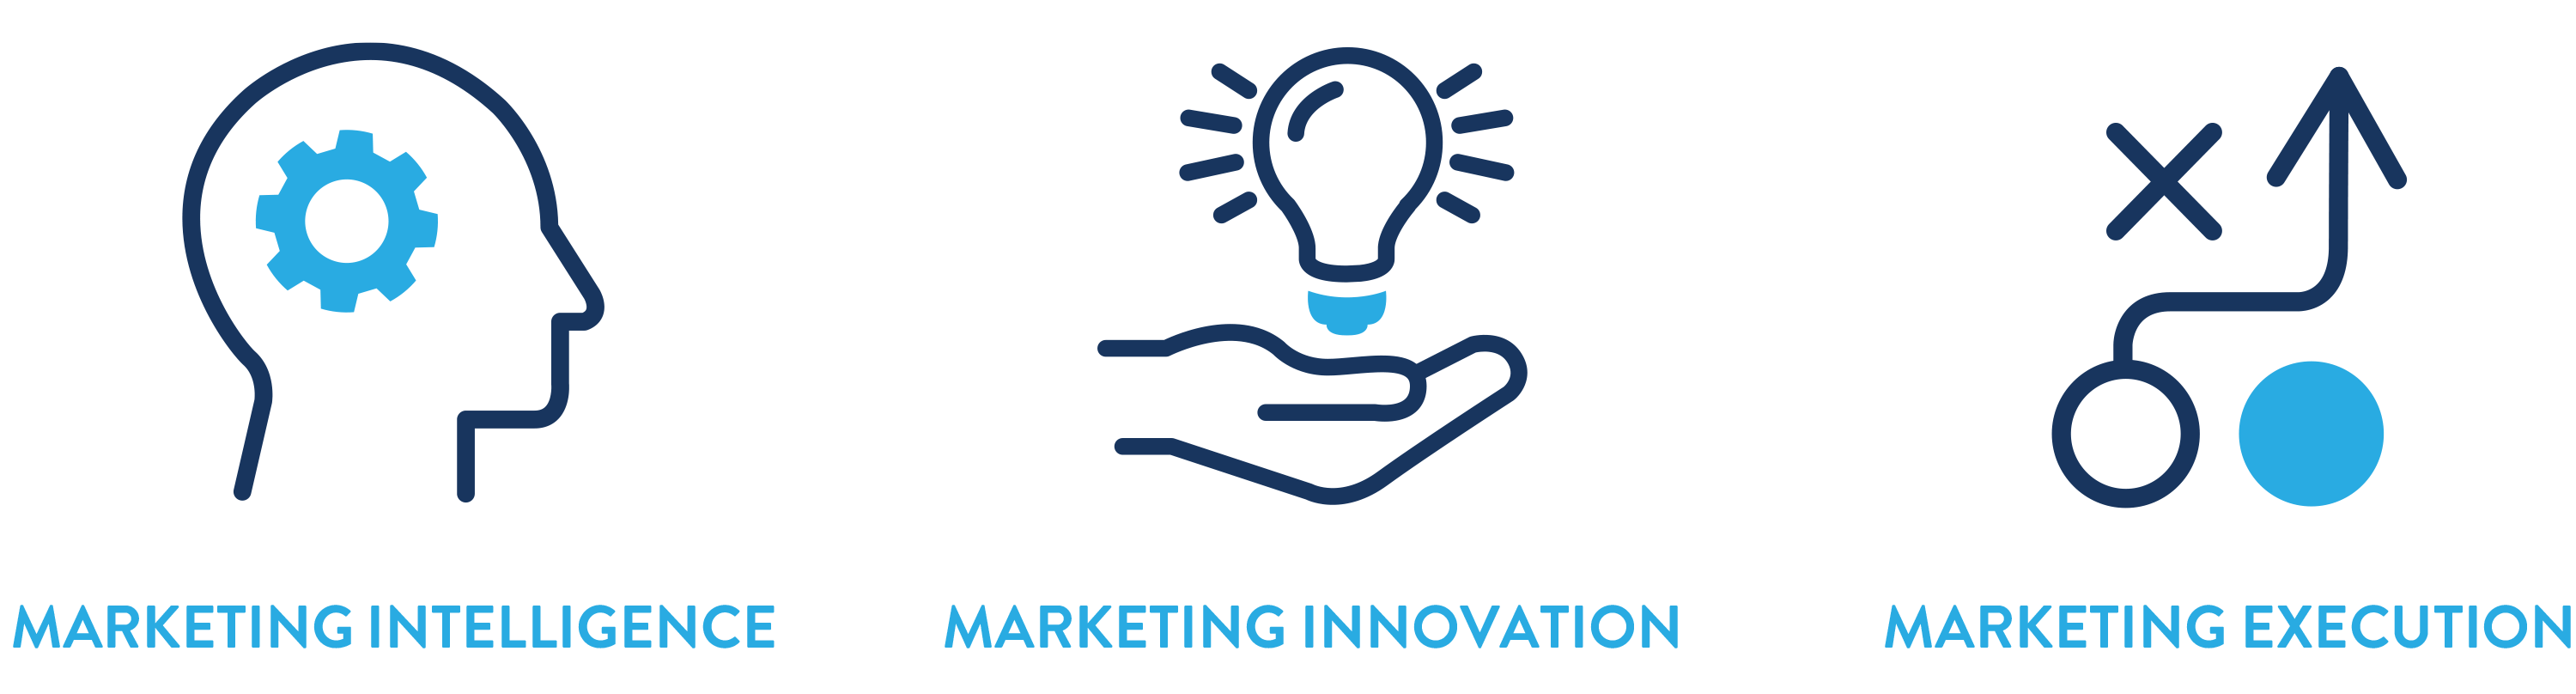 Our three core tenets of marketing intelligence, marketing innovation and marketing execution